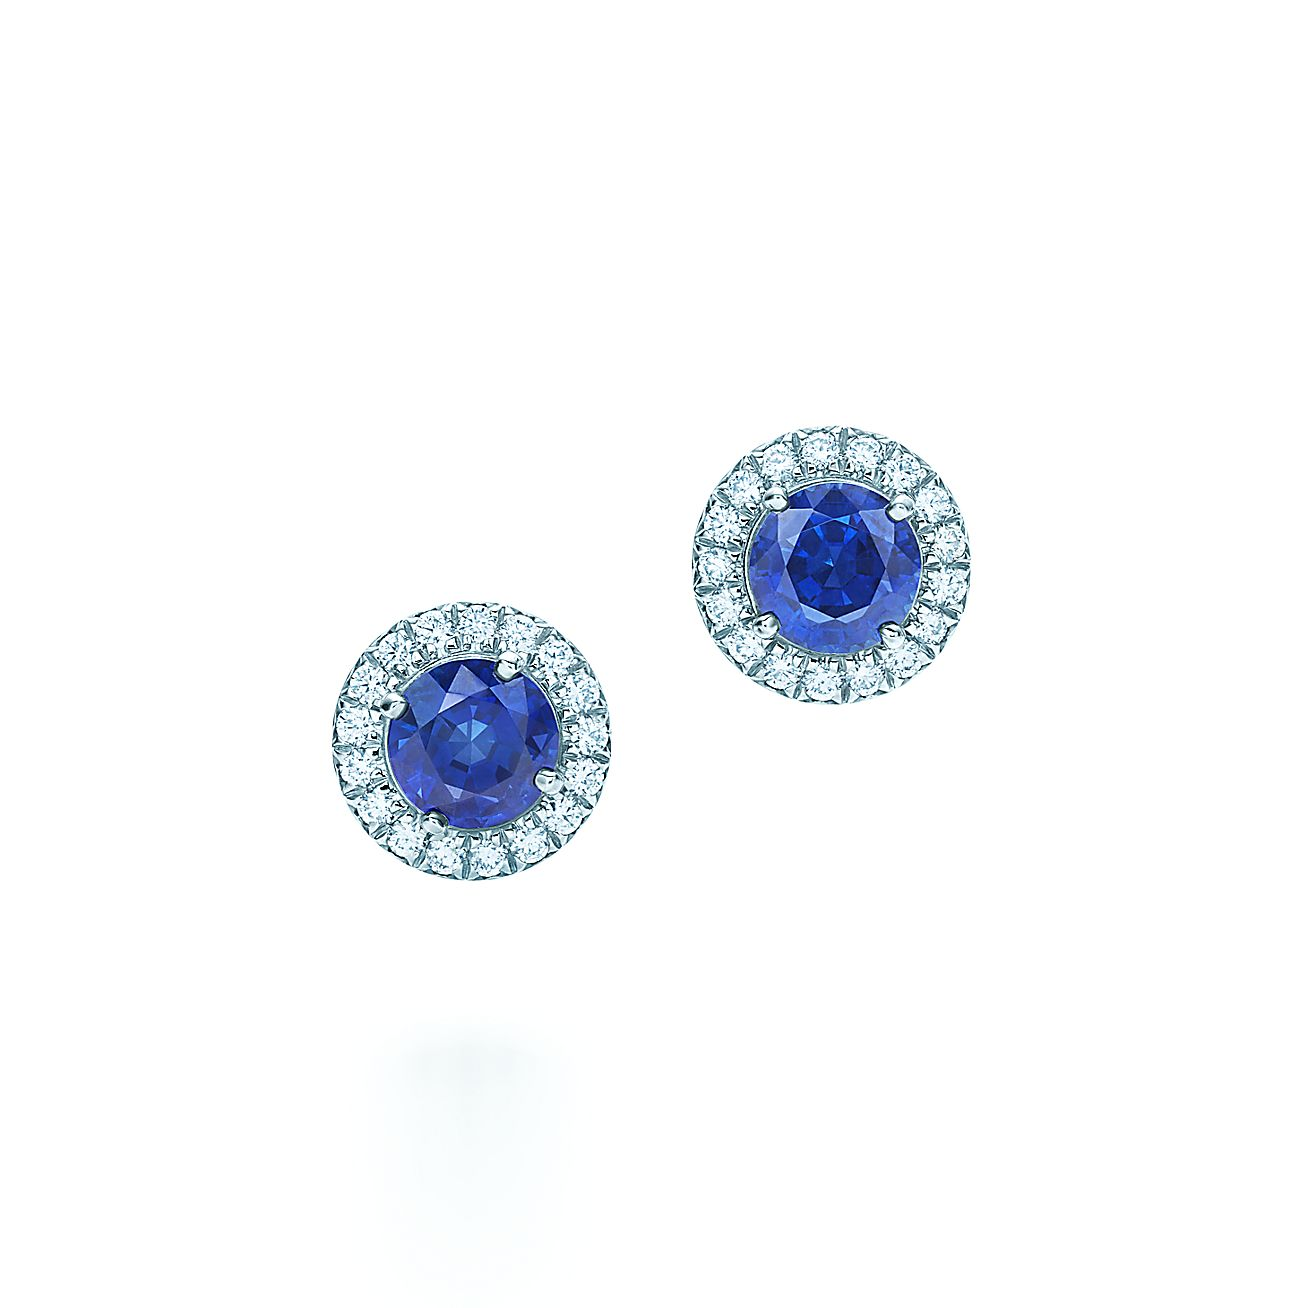 Tiffany Soleste Earrings In Platinum With Shires And Diamonds Co